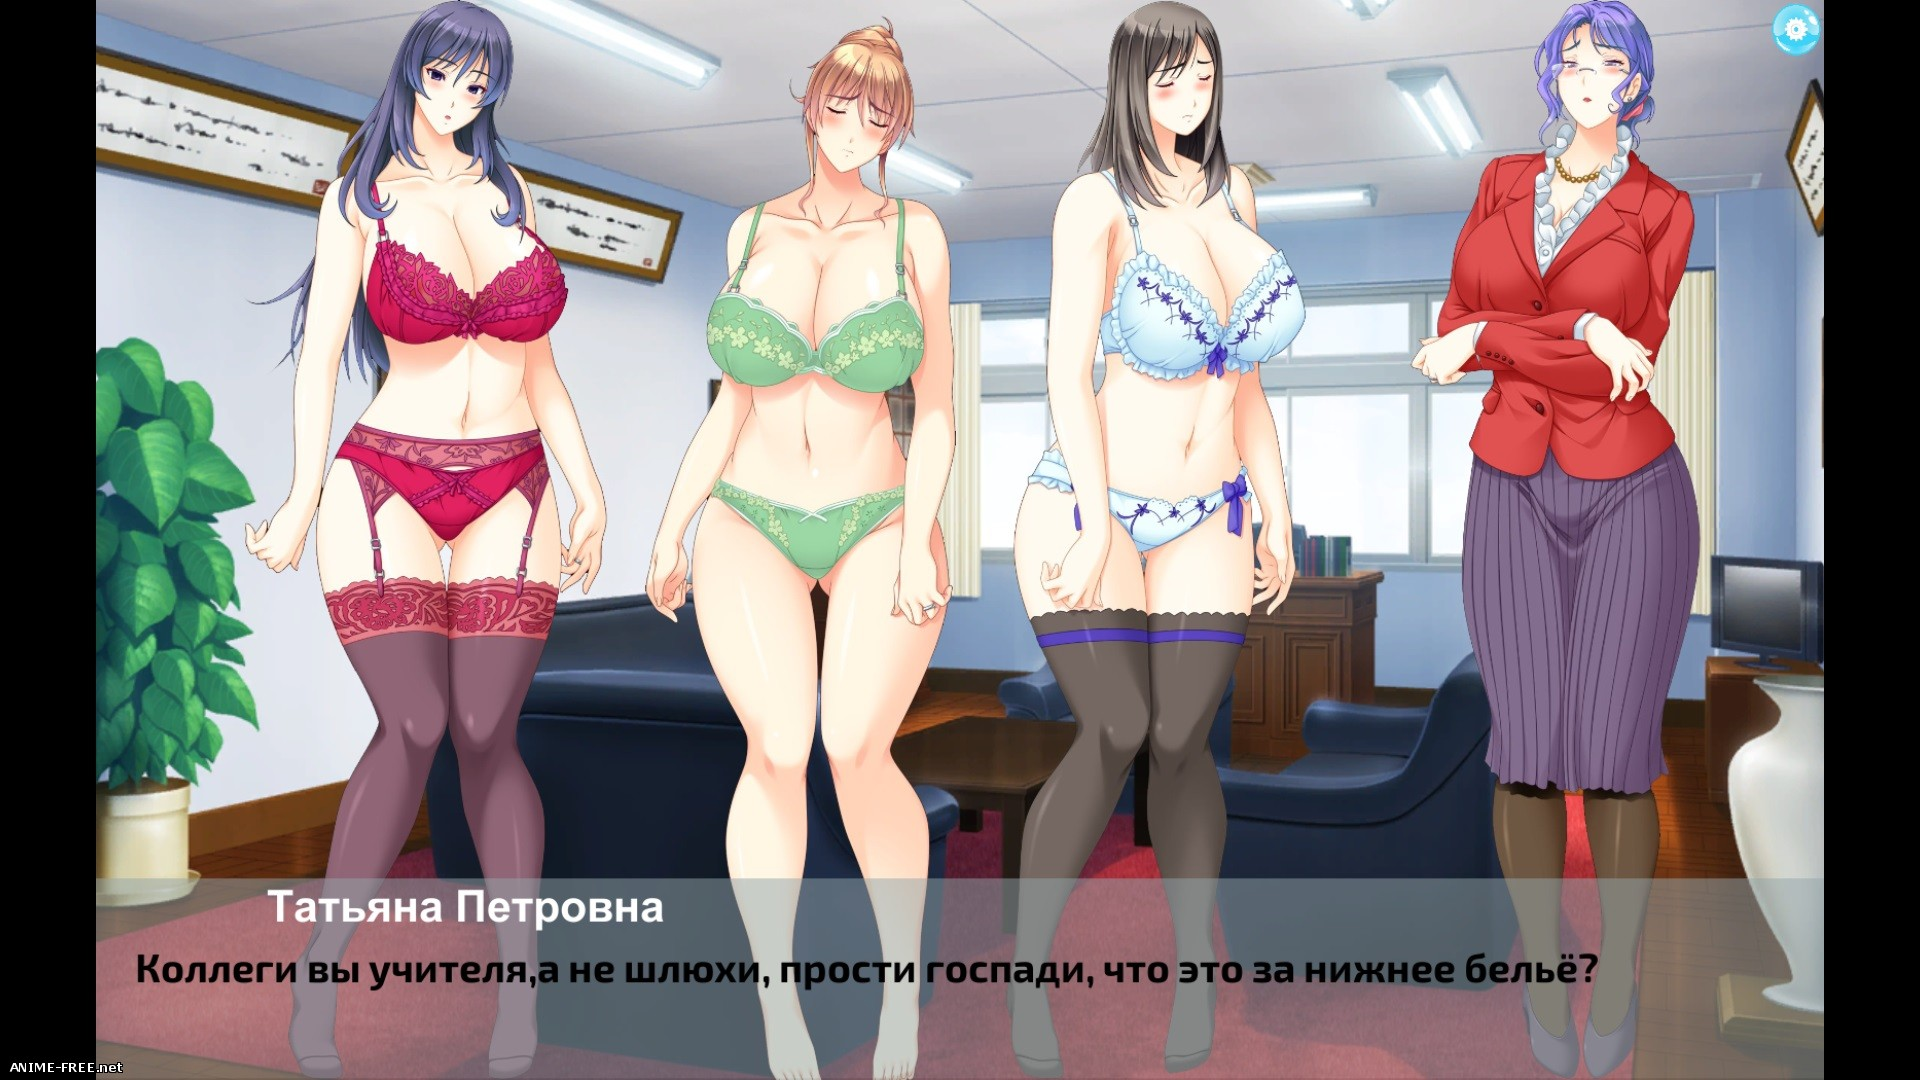 Самый лучший ученик / The best student [2018] [Ptcen] [ADV, VN] [RUS] H-Game